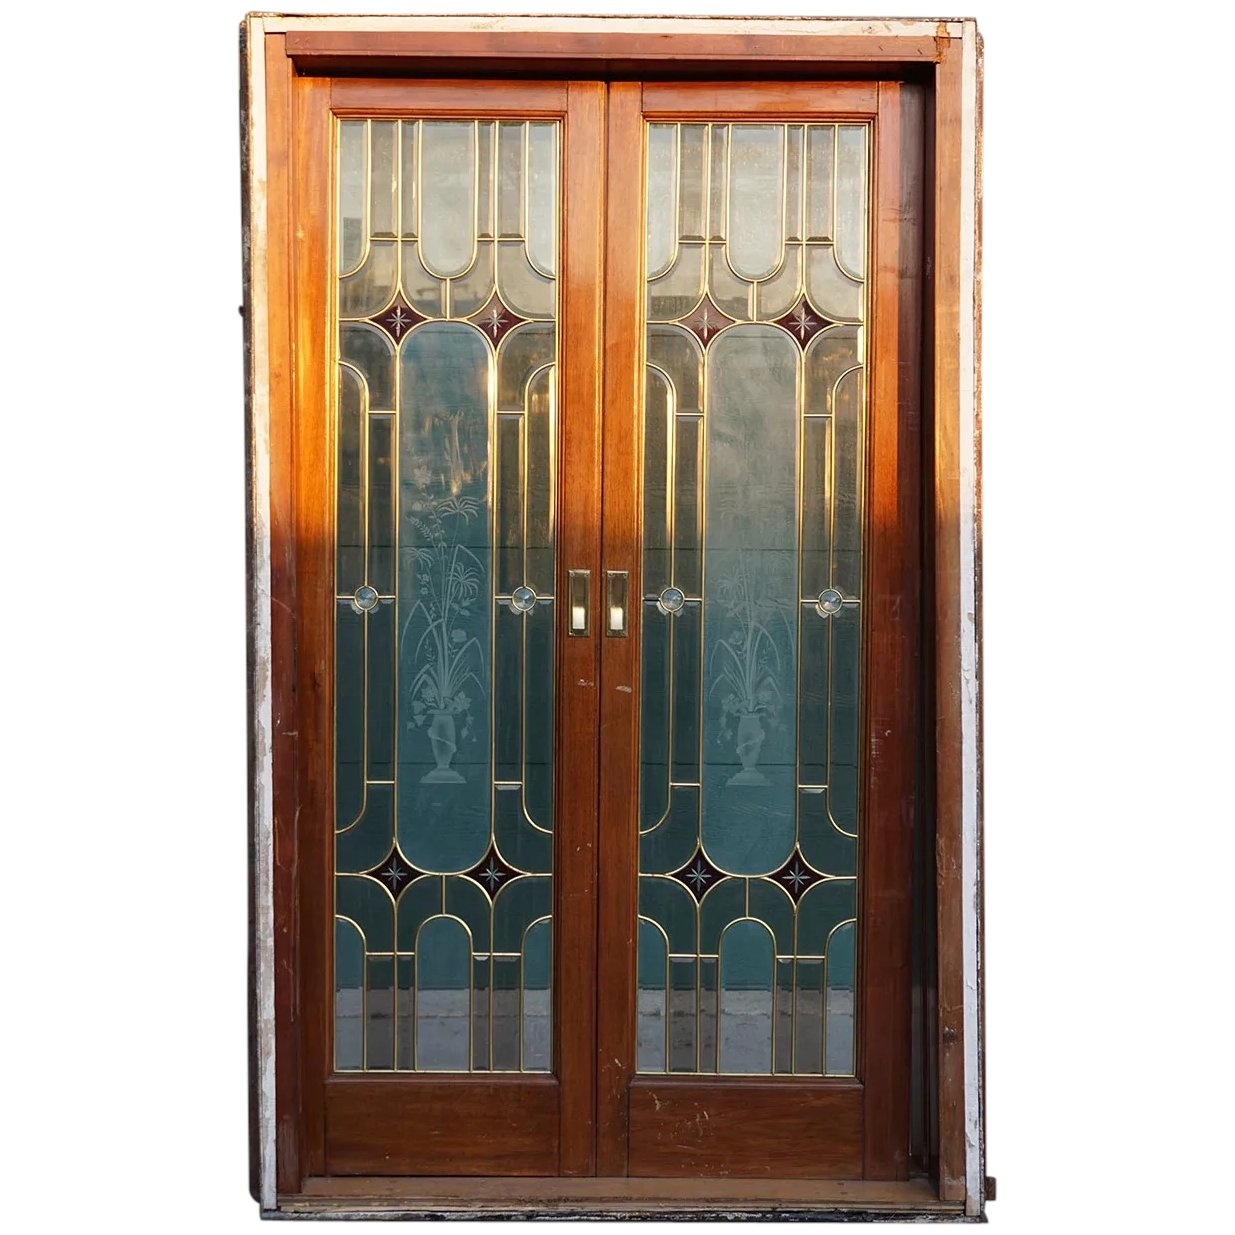 Vintage French Art Deco Style Stained